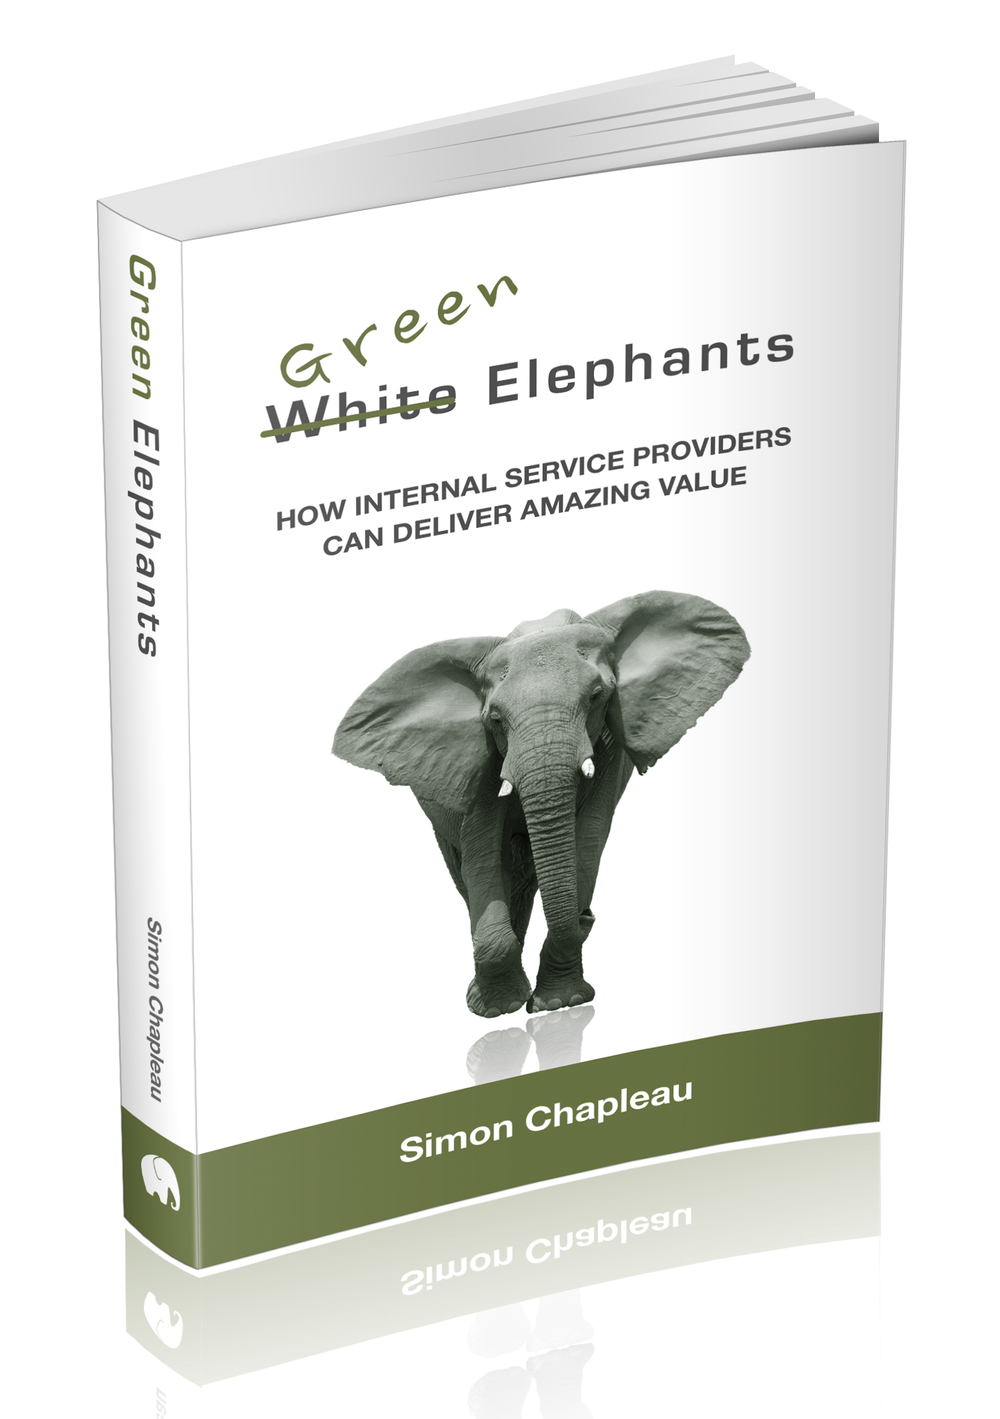 Green_elephants_book